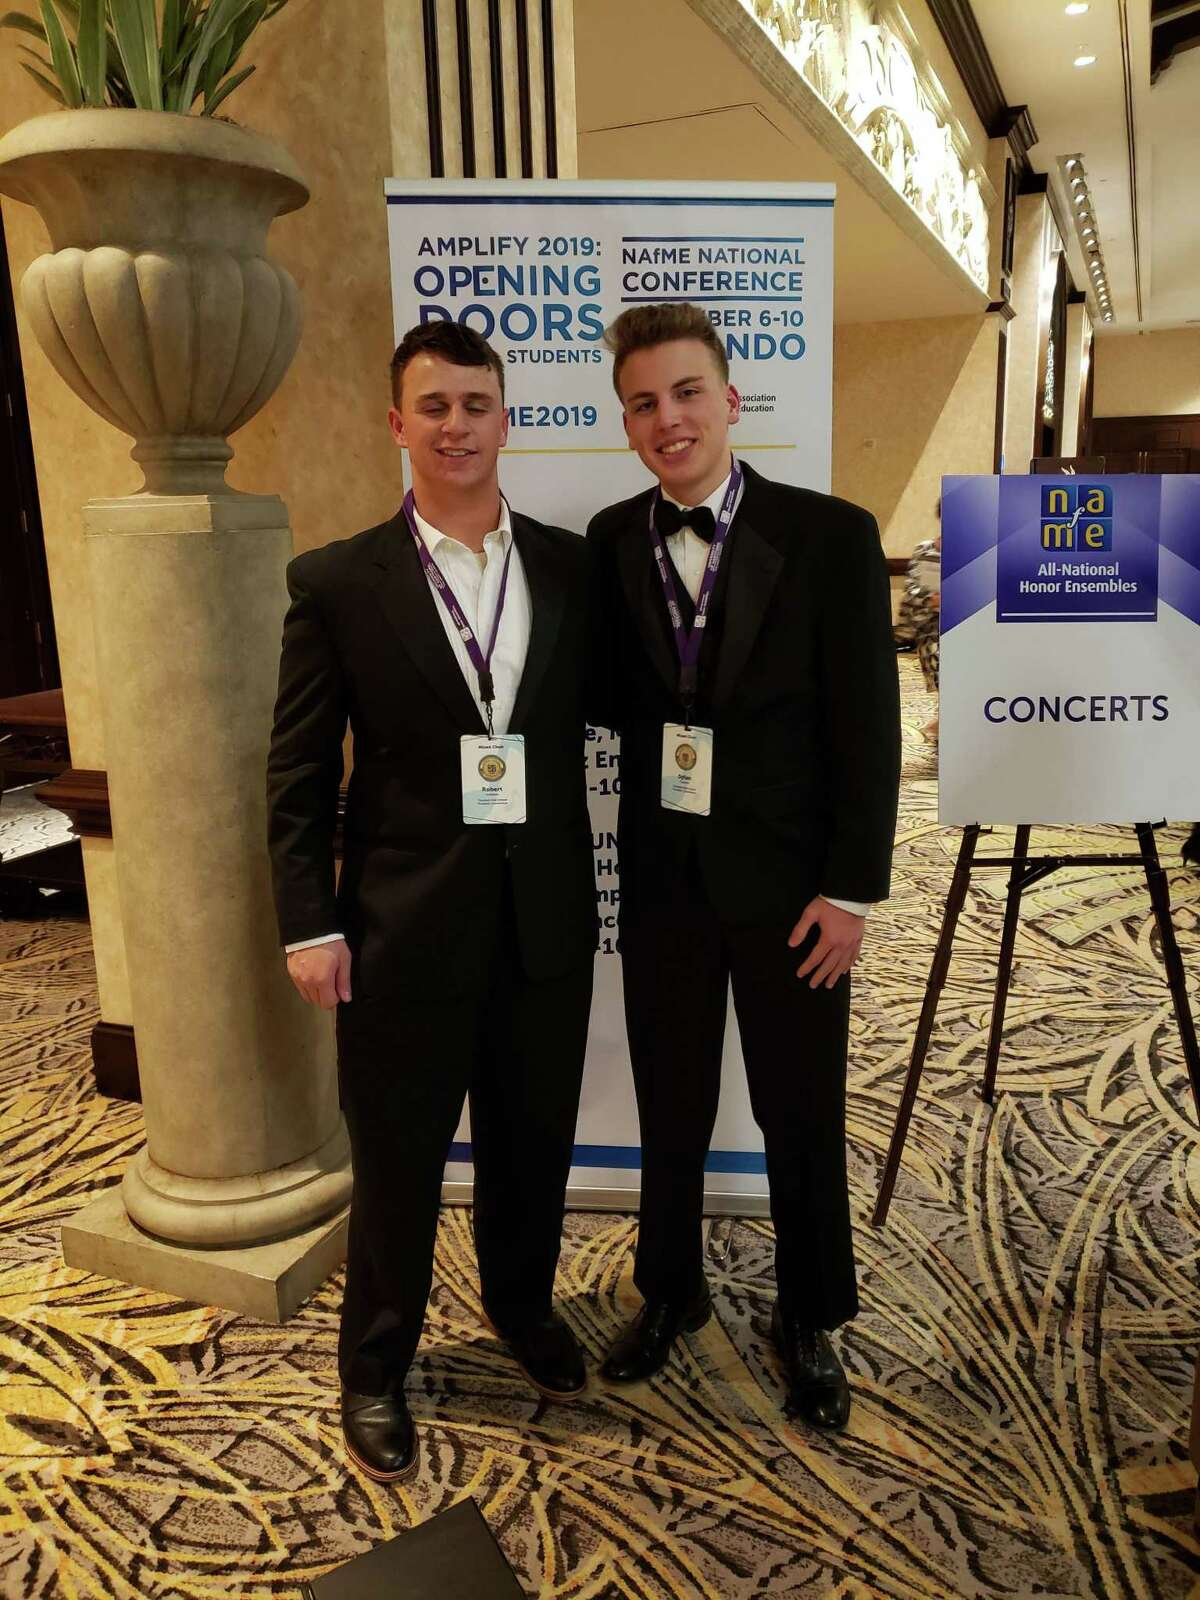 Trumbull High students Dylan Cranston and Robert Goldstein recently spent a week in Orlando, Florida with a group of young vocalists at the National Association for Music Education 2019 All-National Honor Ensembles.